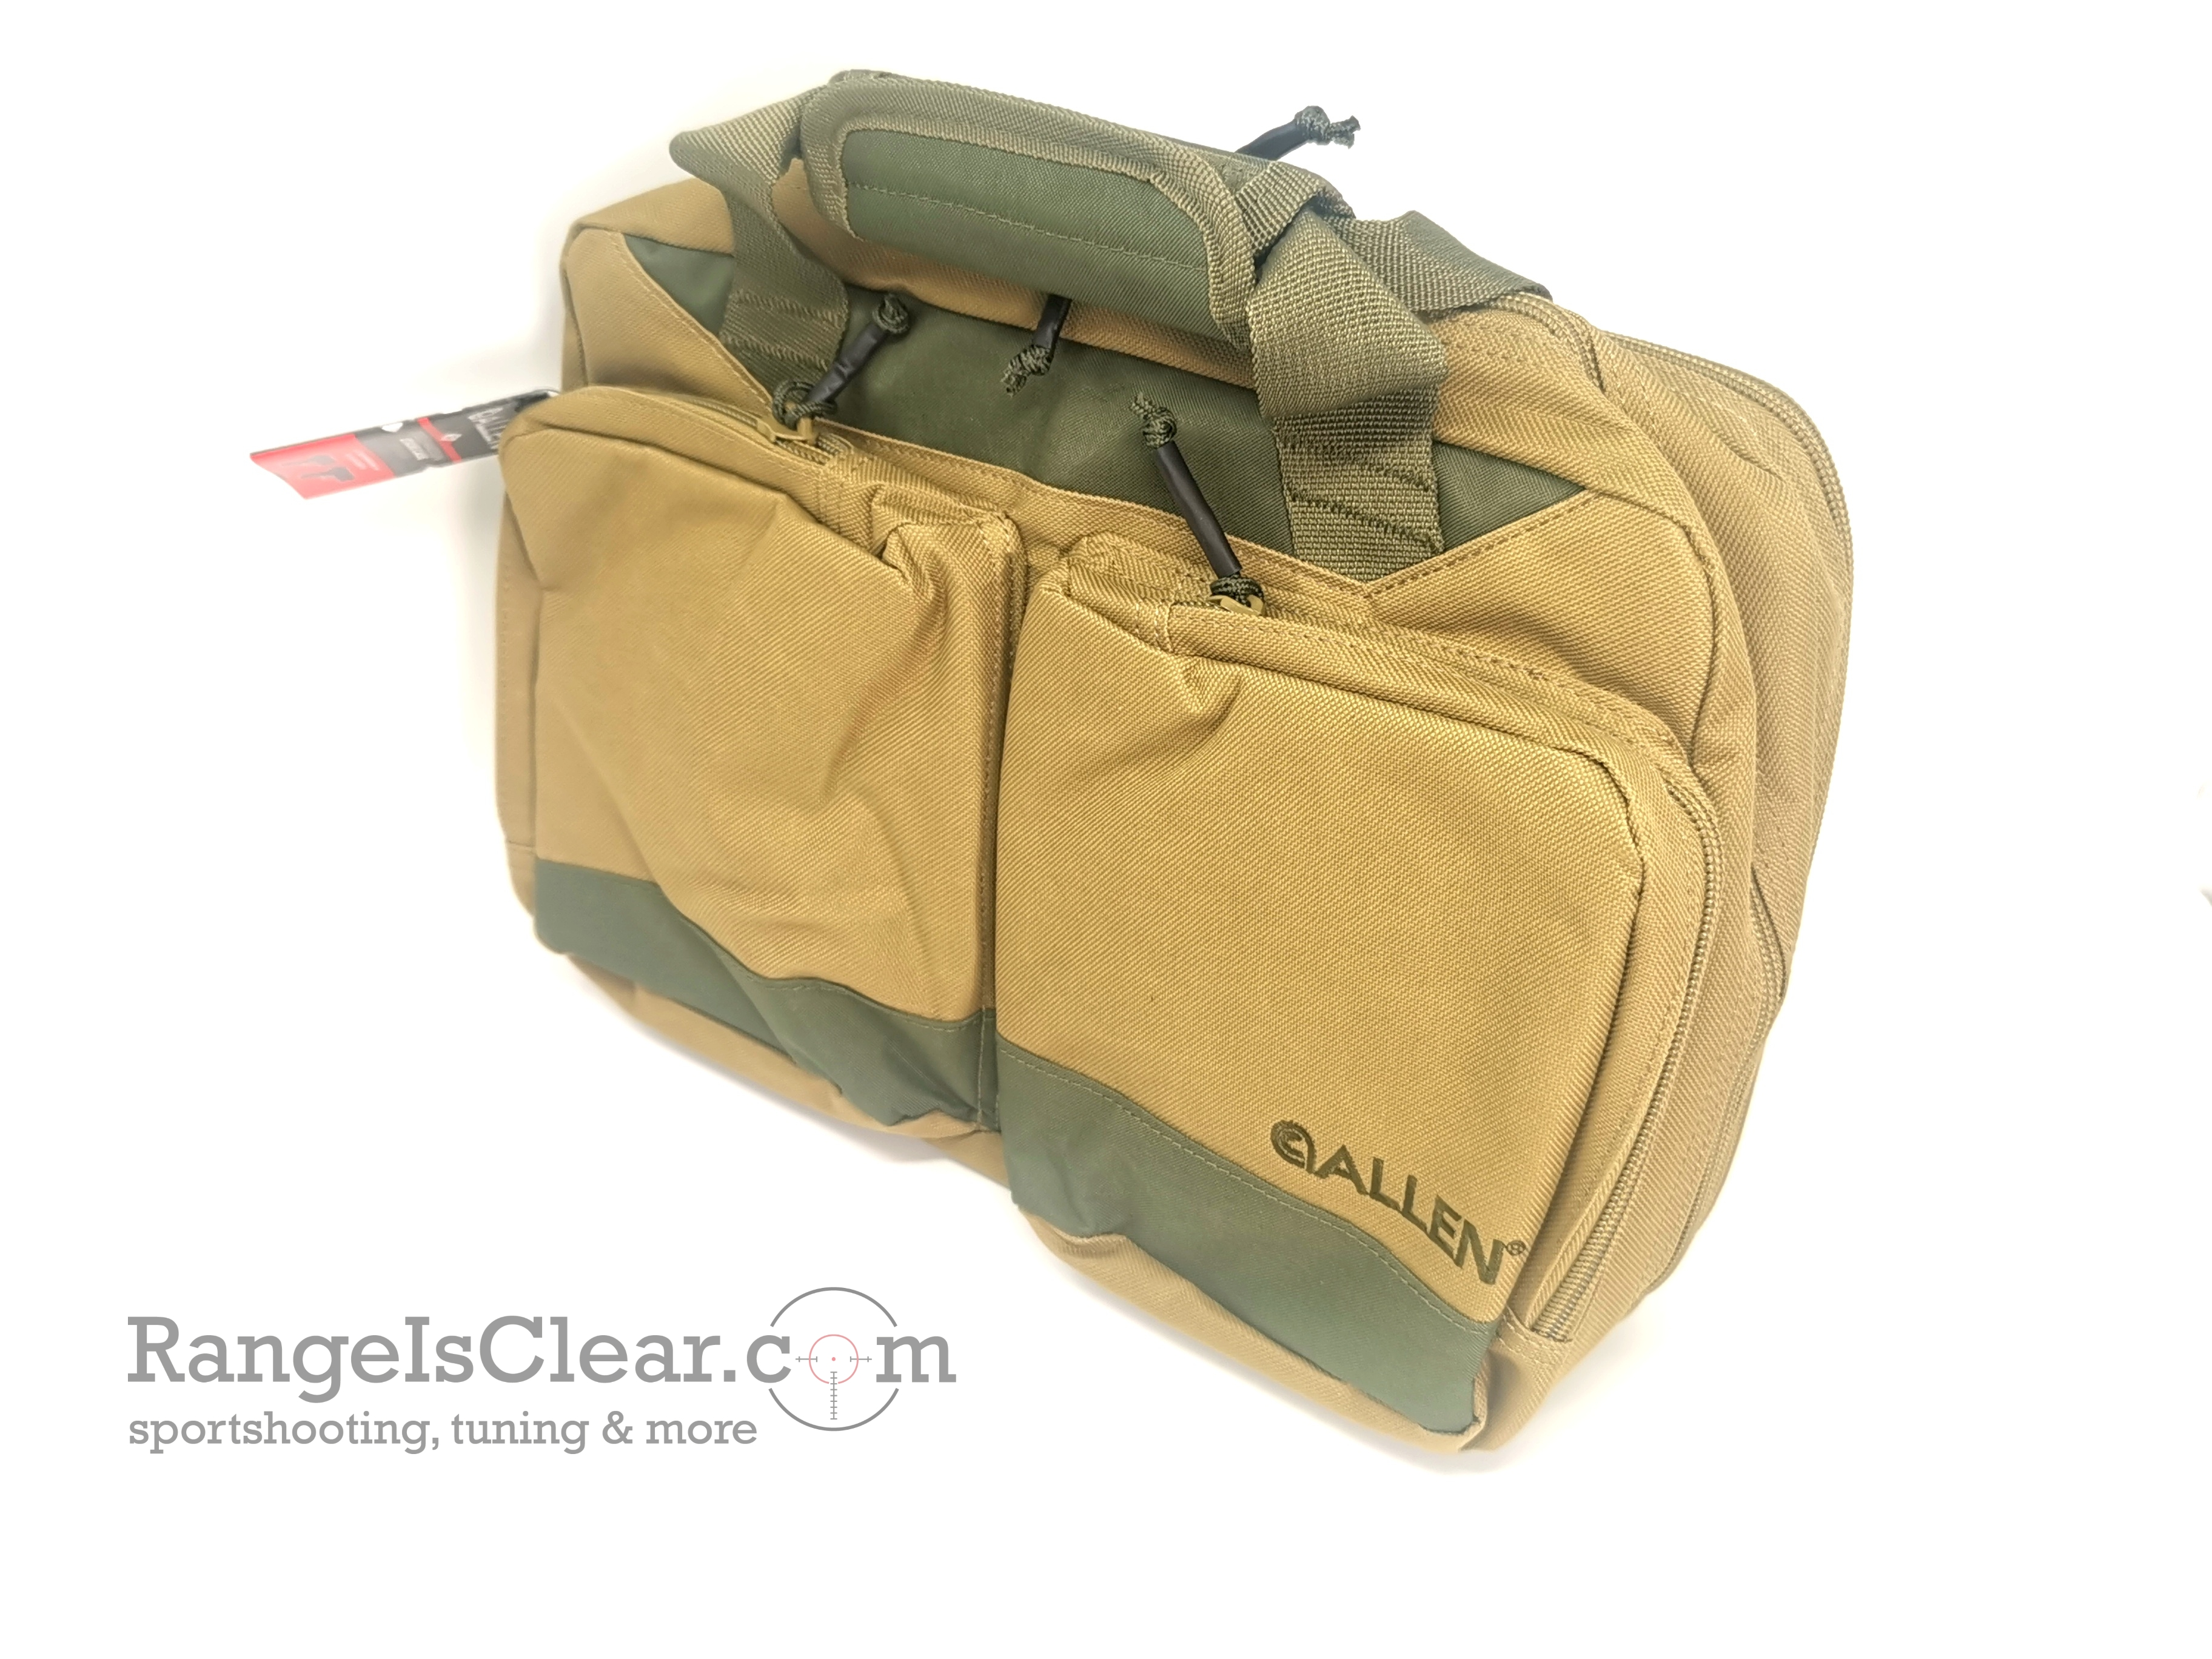 Allen Double Handgun Pistol Bag sand/green